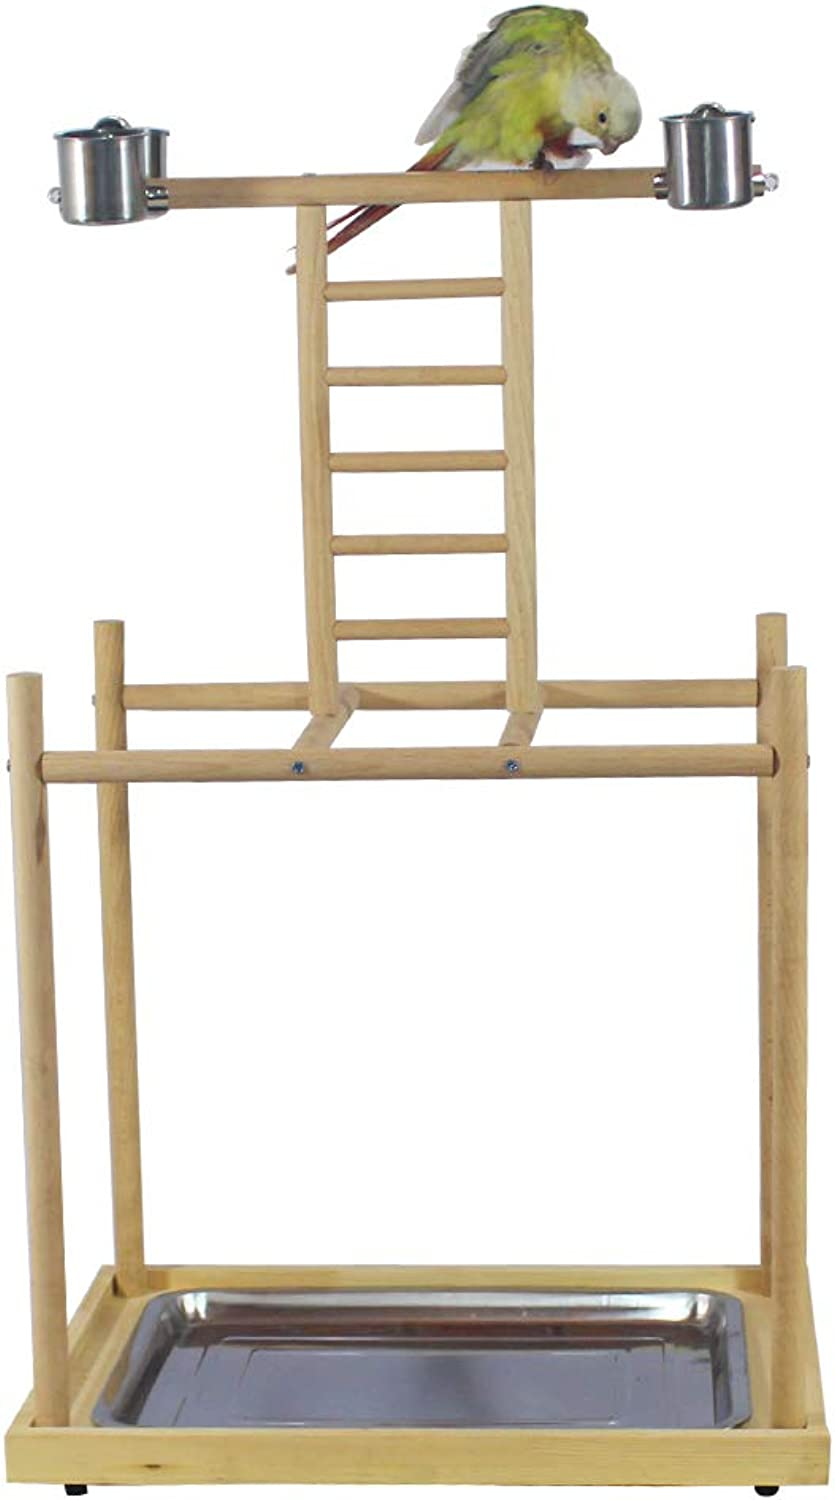 QBLEEV Parred Playstand Bird Play Gym Birdcage Stands Wood Feeder Cups Cage Perches Platform Ladder Playground Playpen for Small Medium Large Cockatiels Parakeets Conures